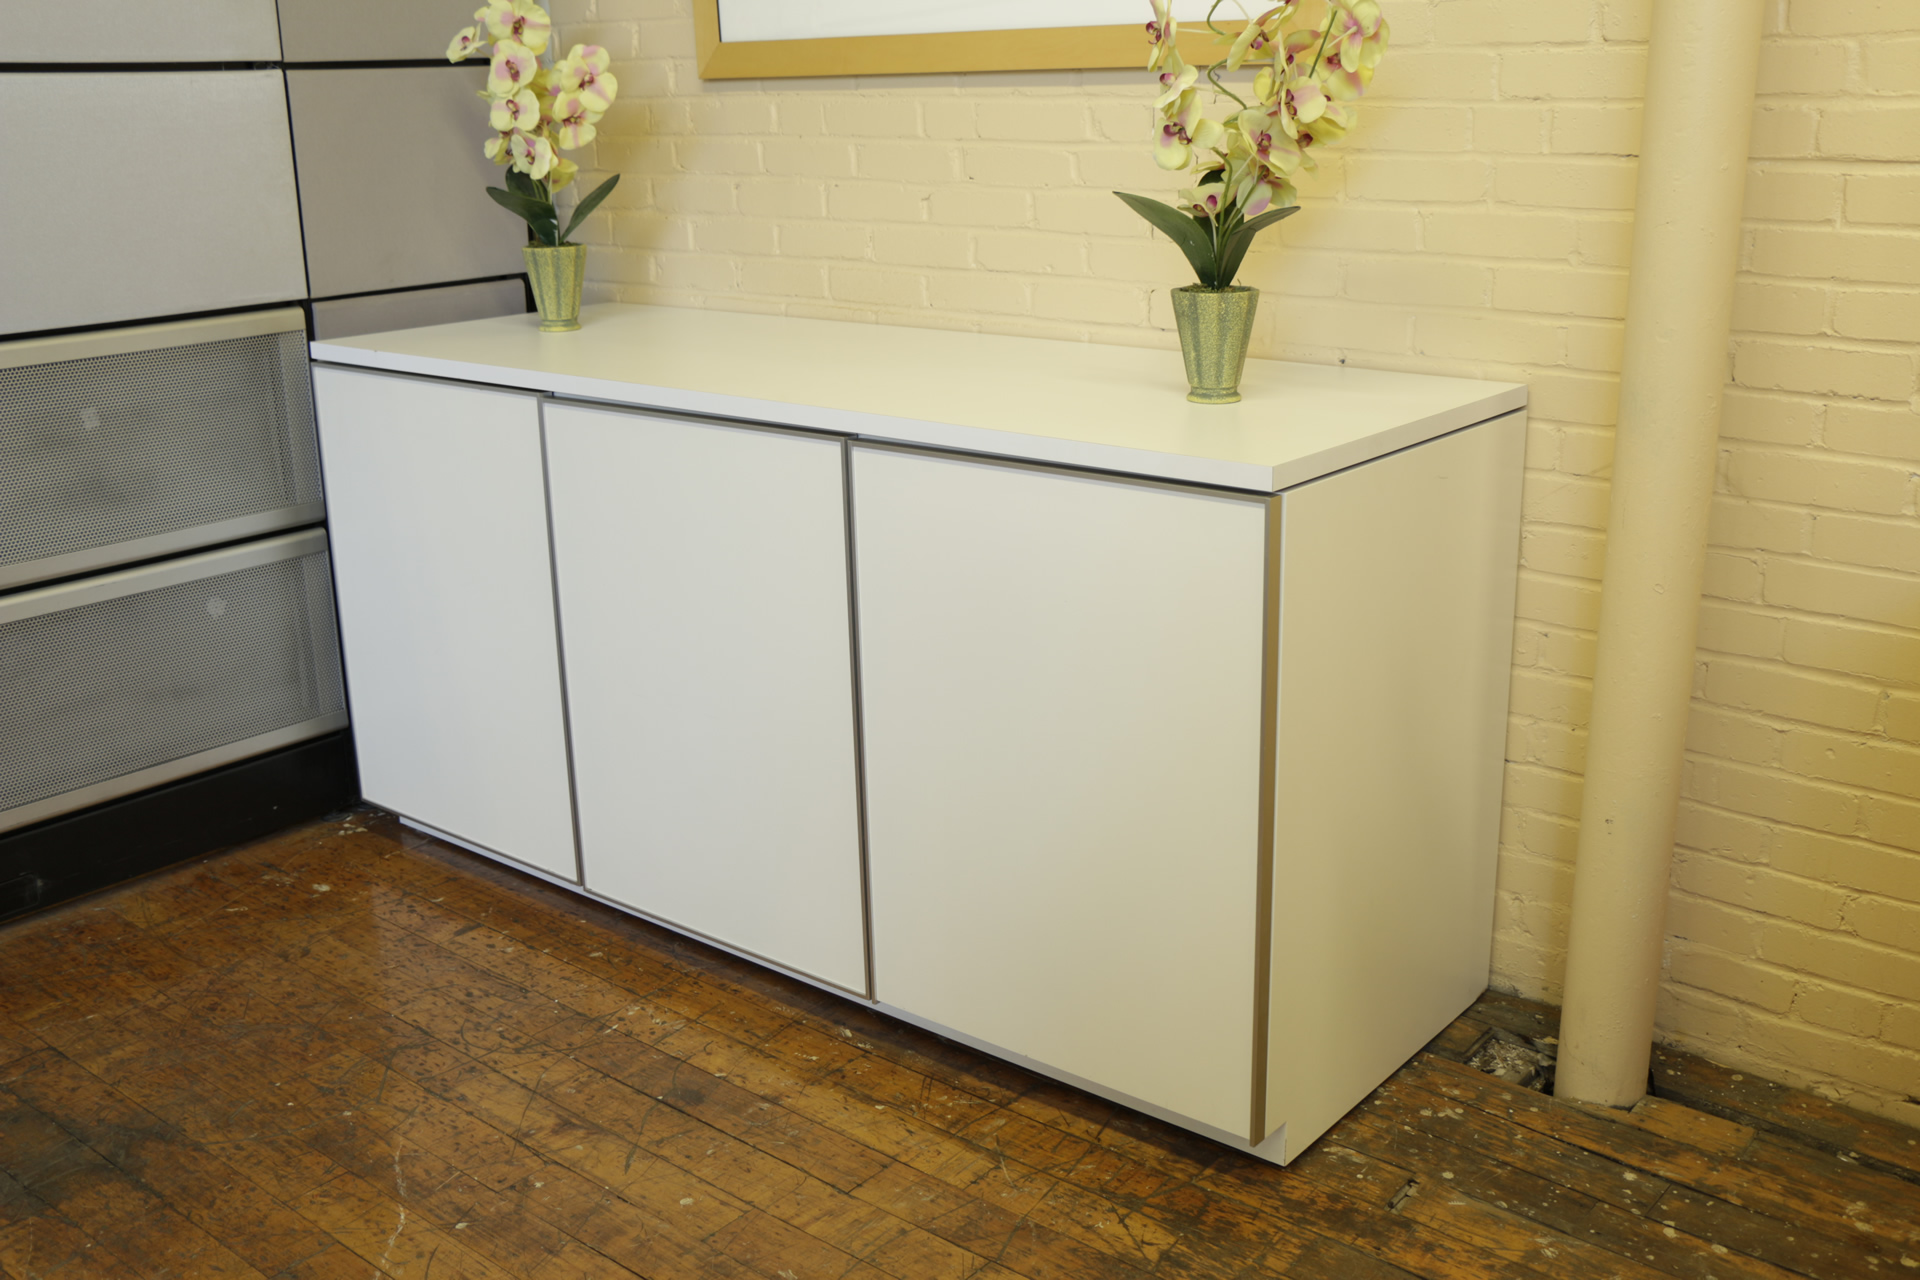 White Neinkamper 3 Door Credenza with Metallic Trim